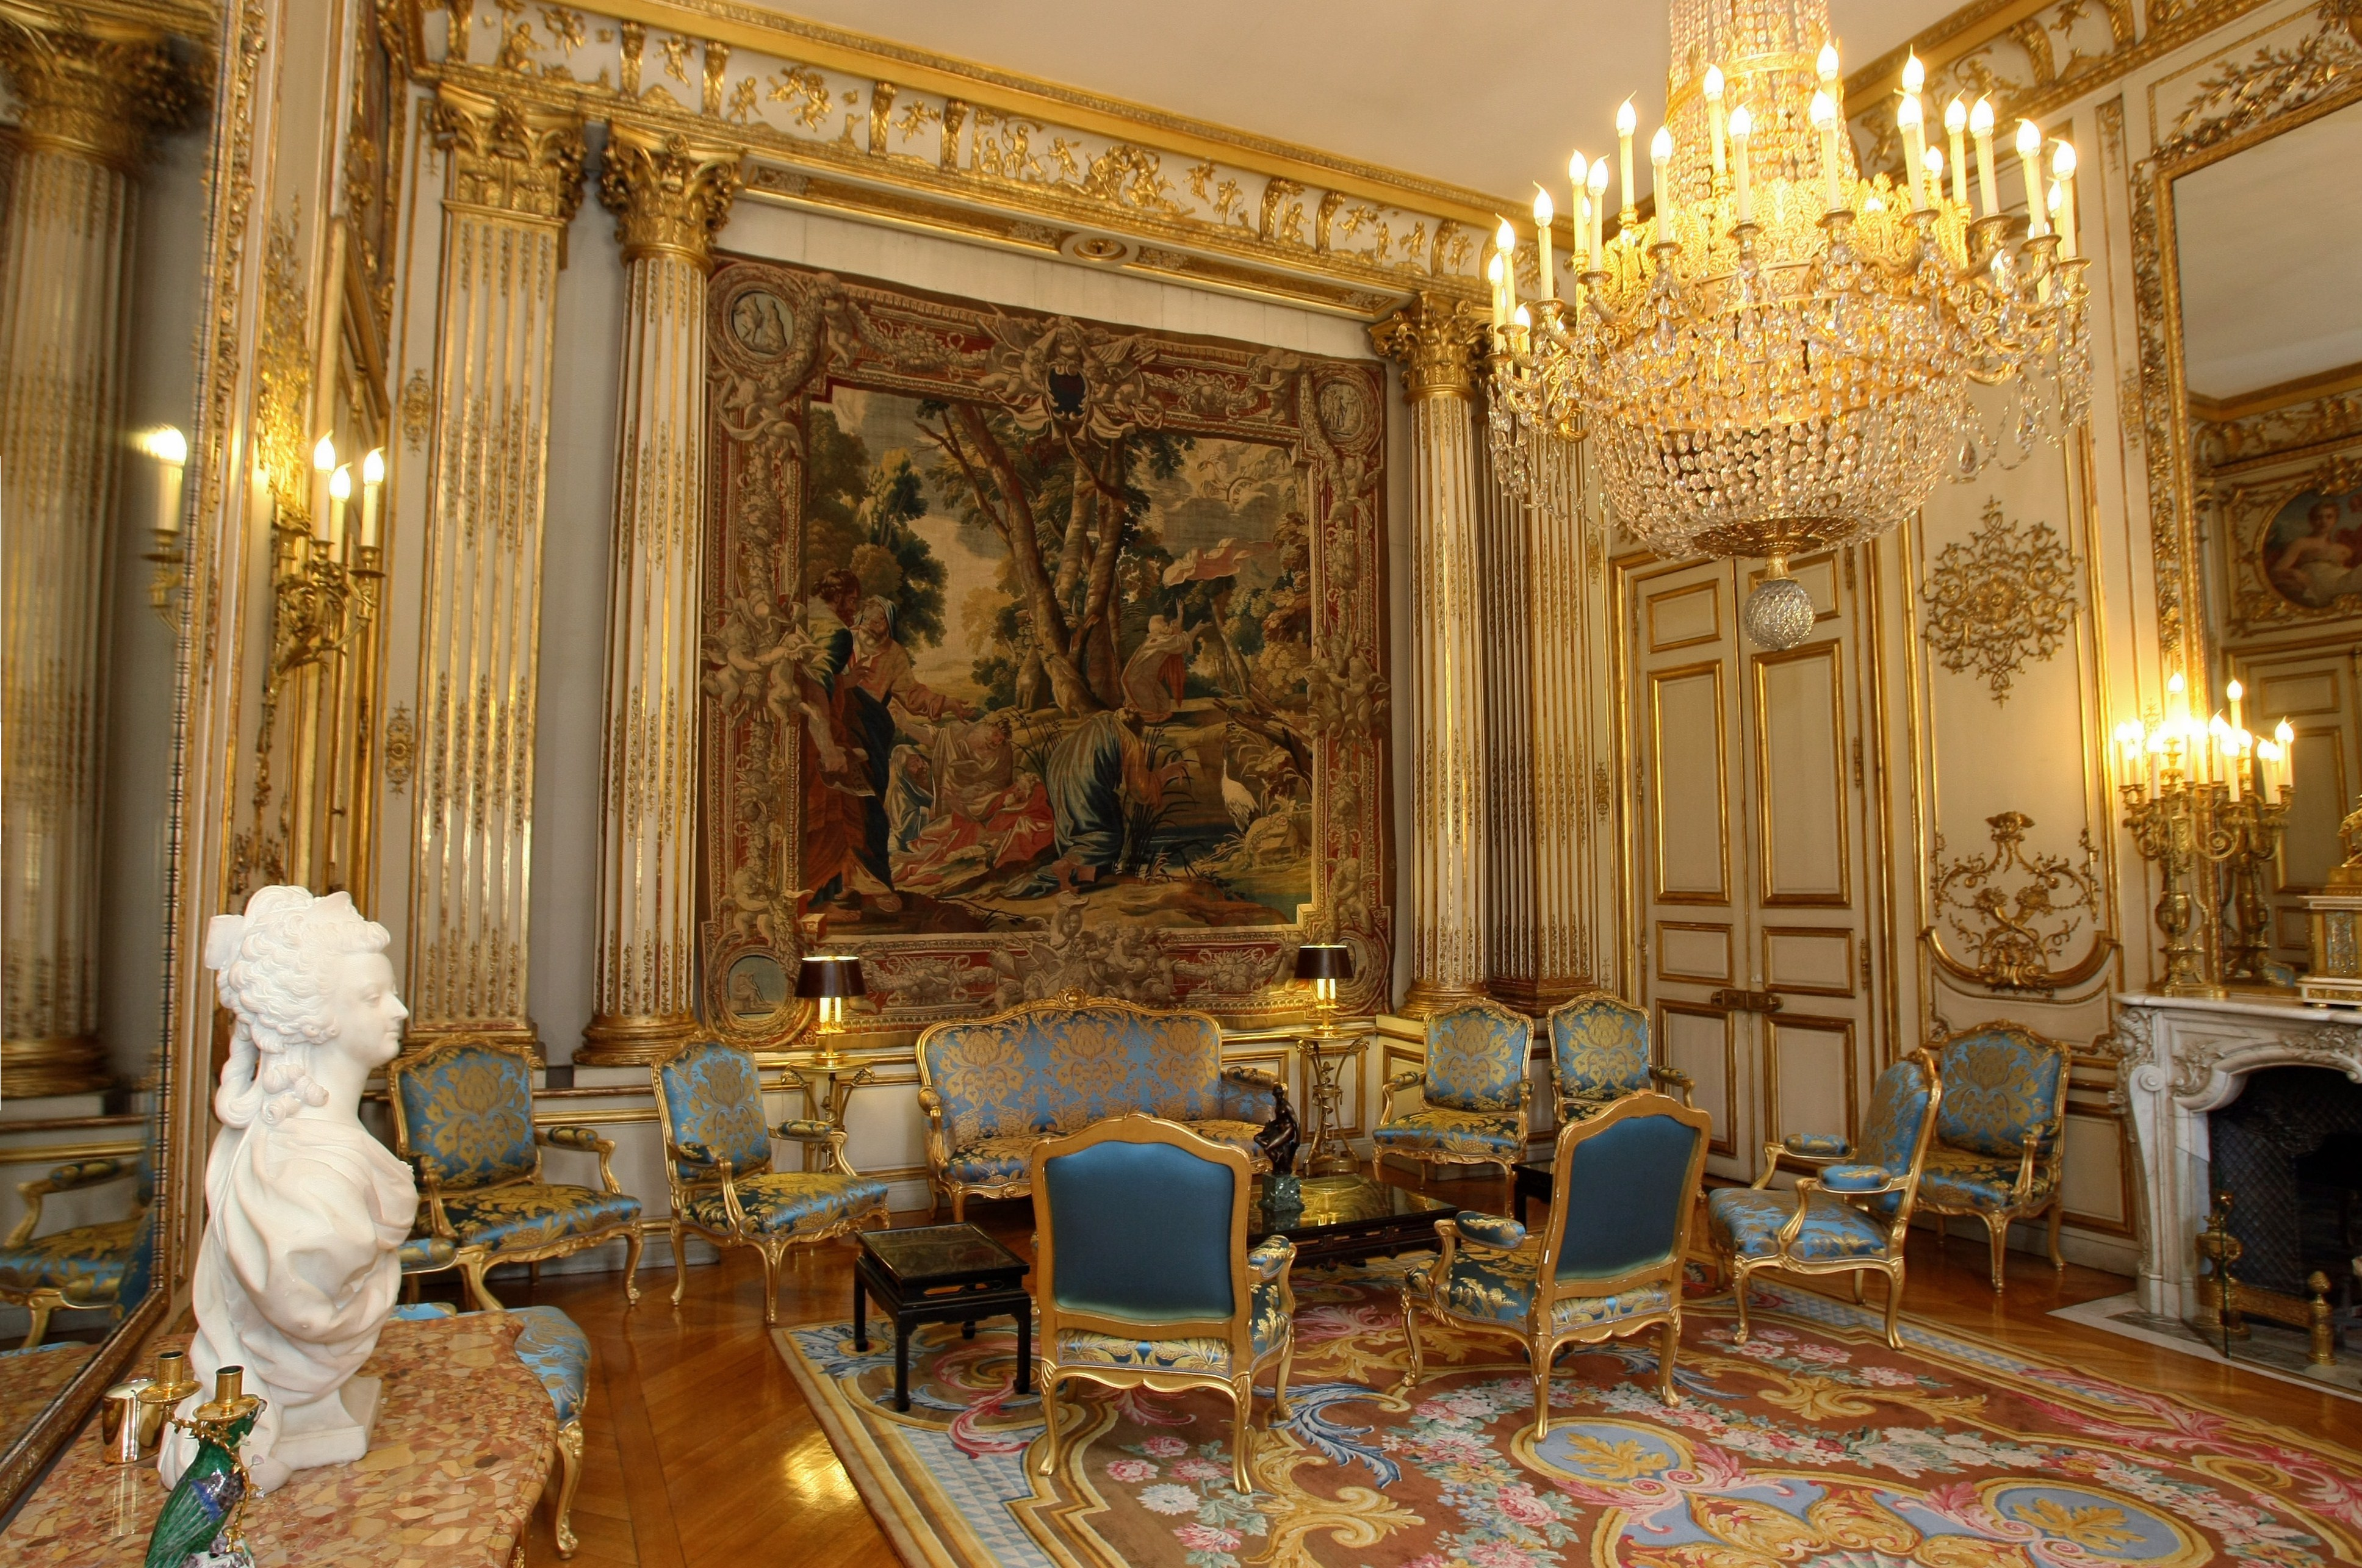 Cheminees Philippe Orleans Palais De L Elysee Interior Pictures To Pin On Pinterest